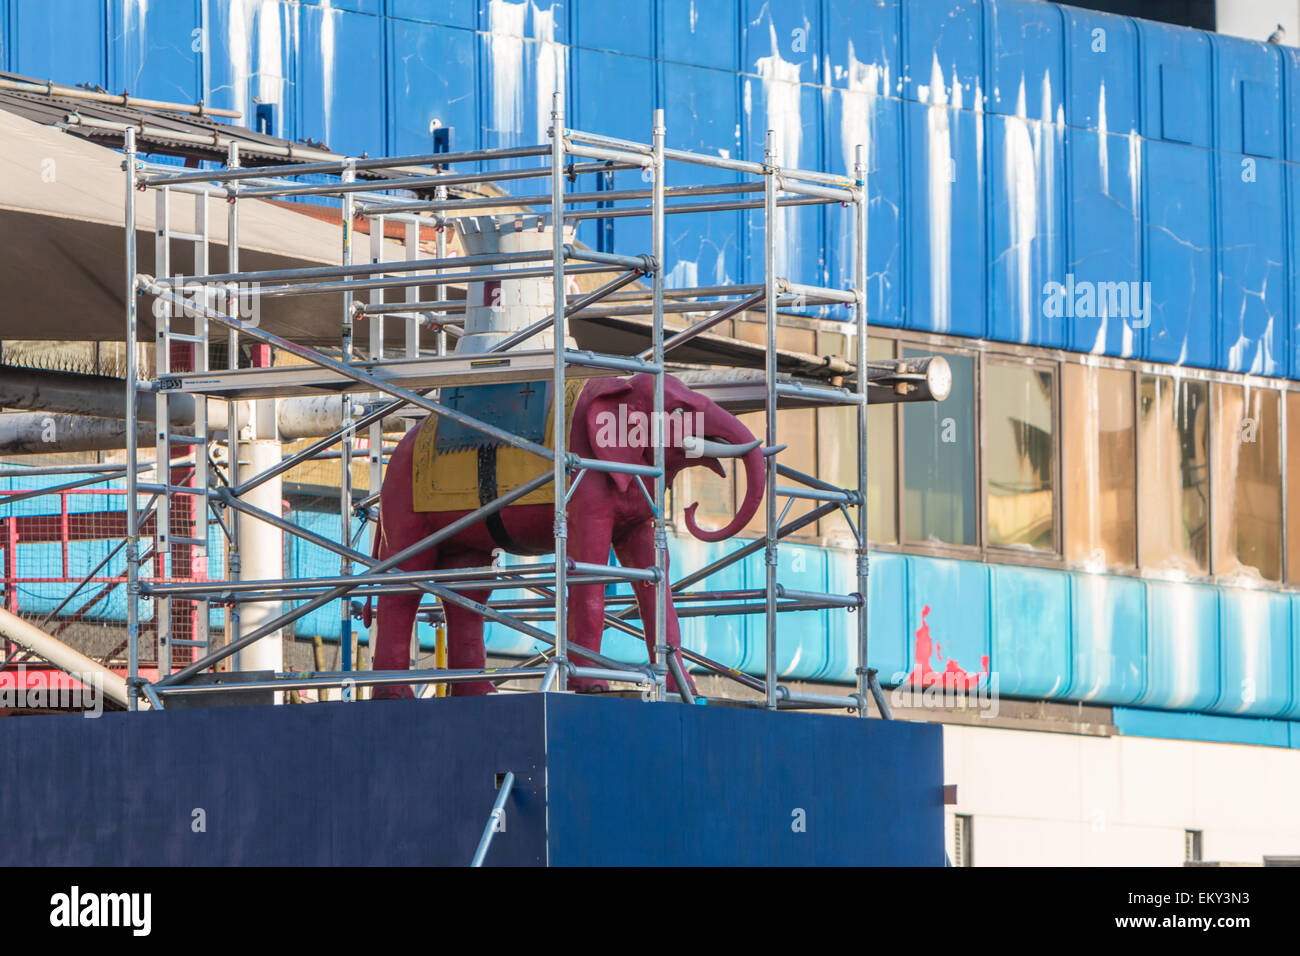 Statue of the Elephant and Castle wrapped in scaffolding before relocation - visual metaphor for the regeneration - Stock Image